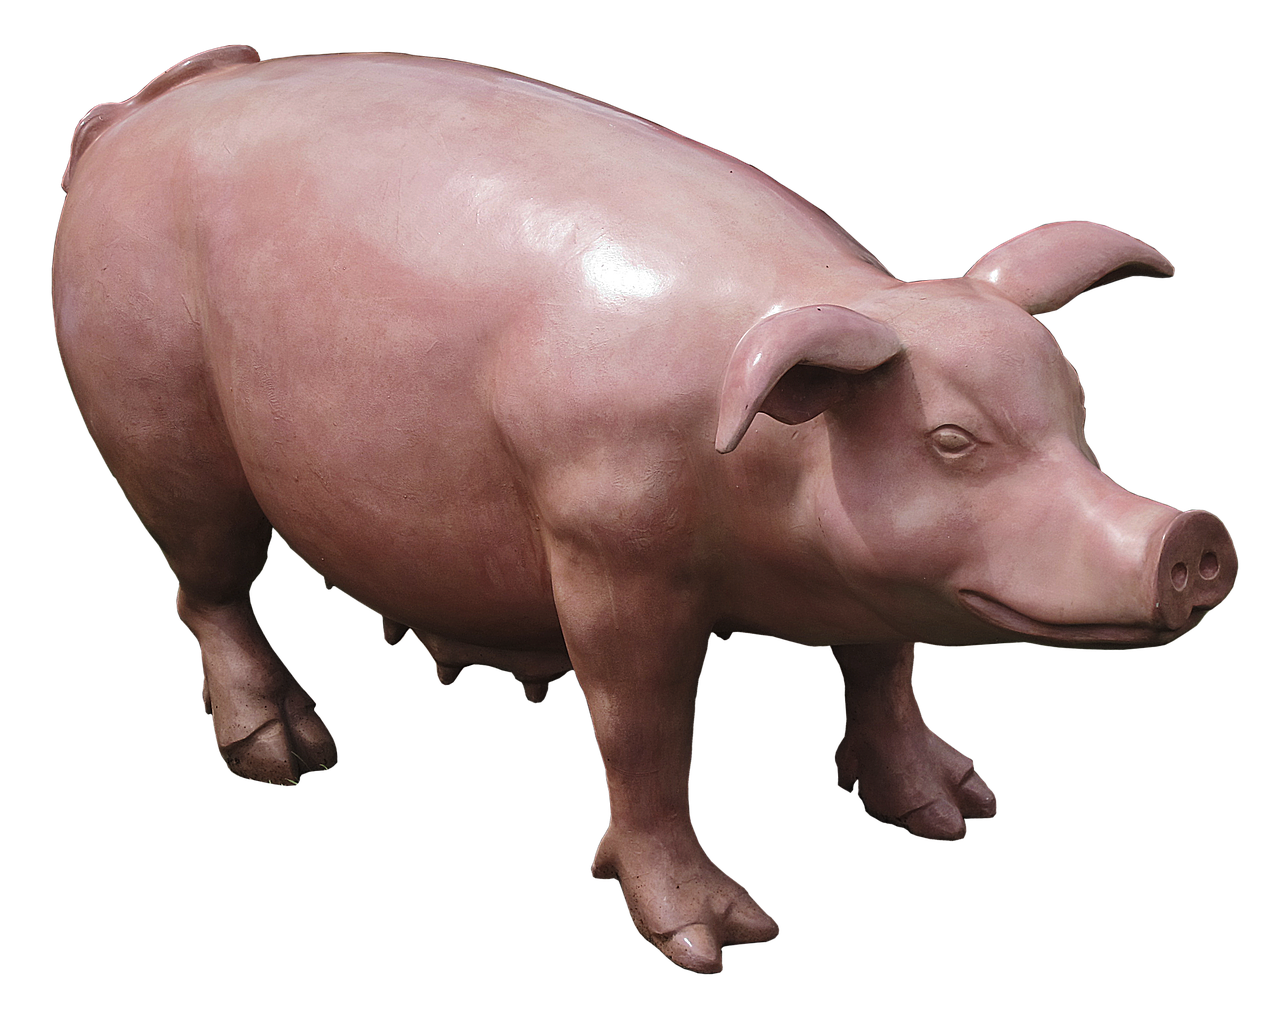 pig sow sculpture free photo